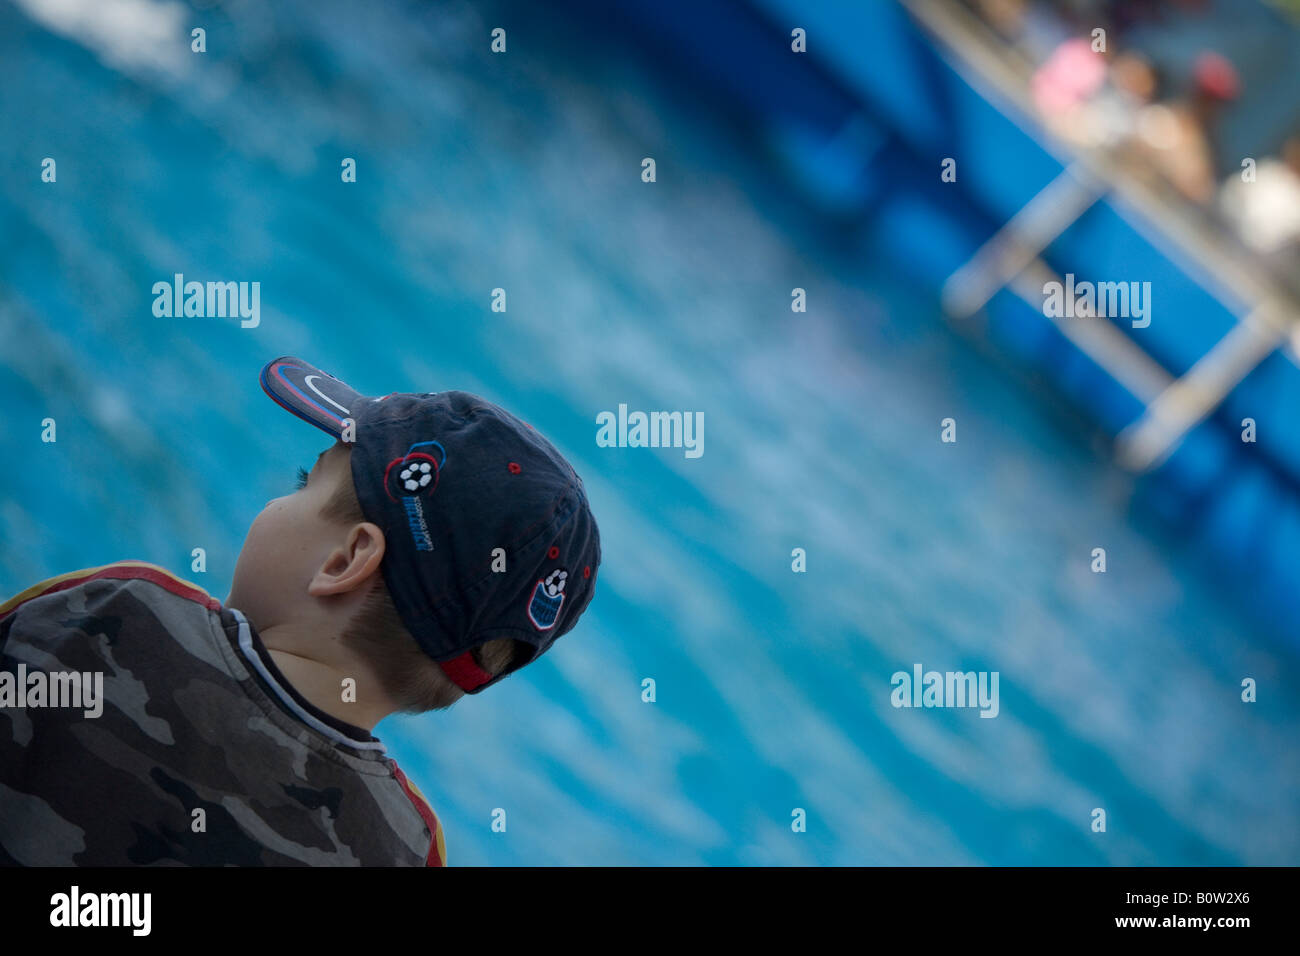 Boy on holiday watching sea life show - Stock Image